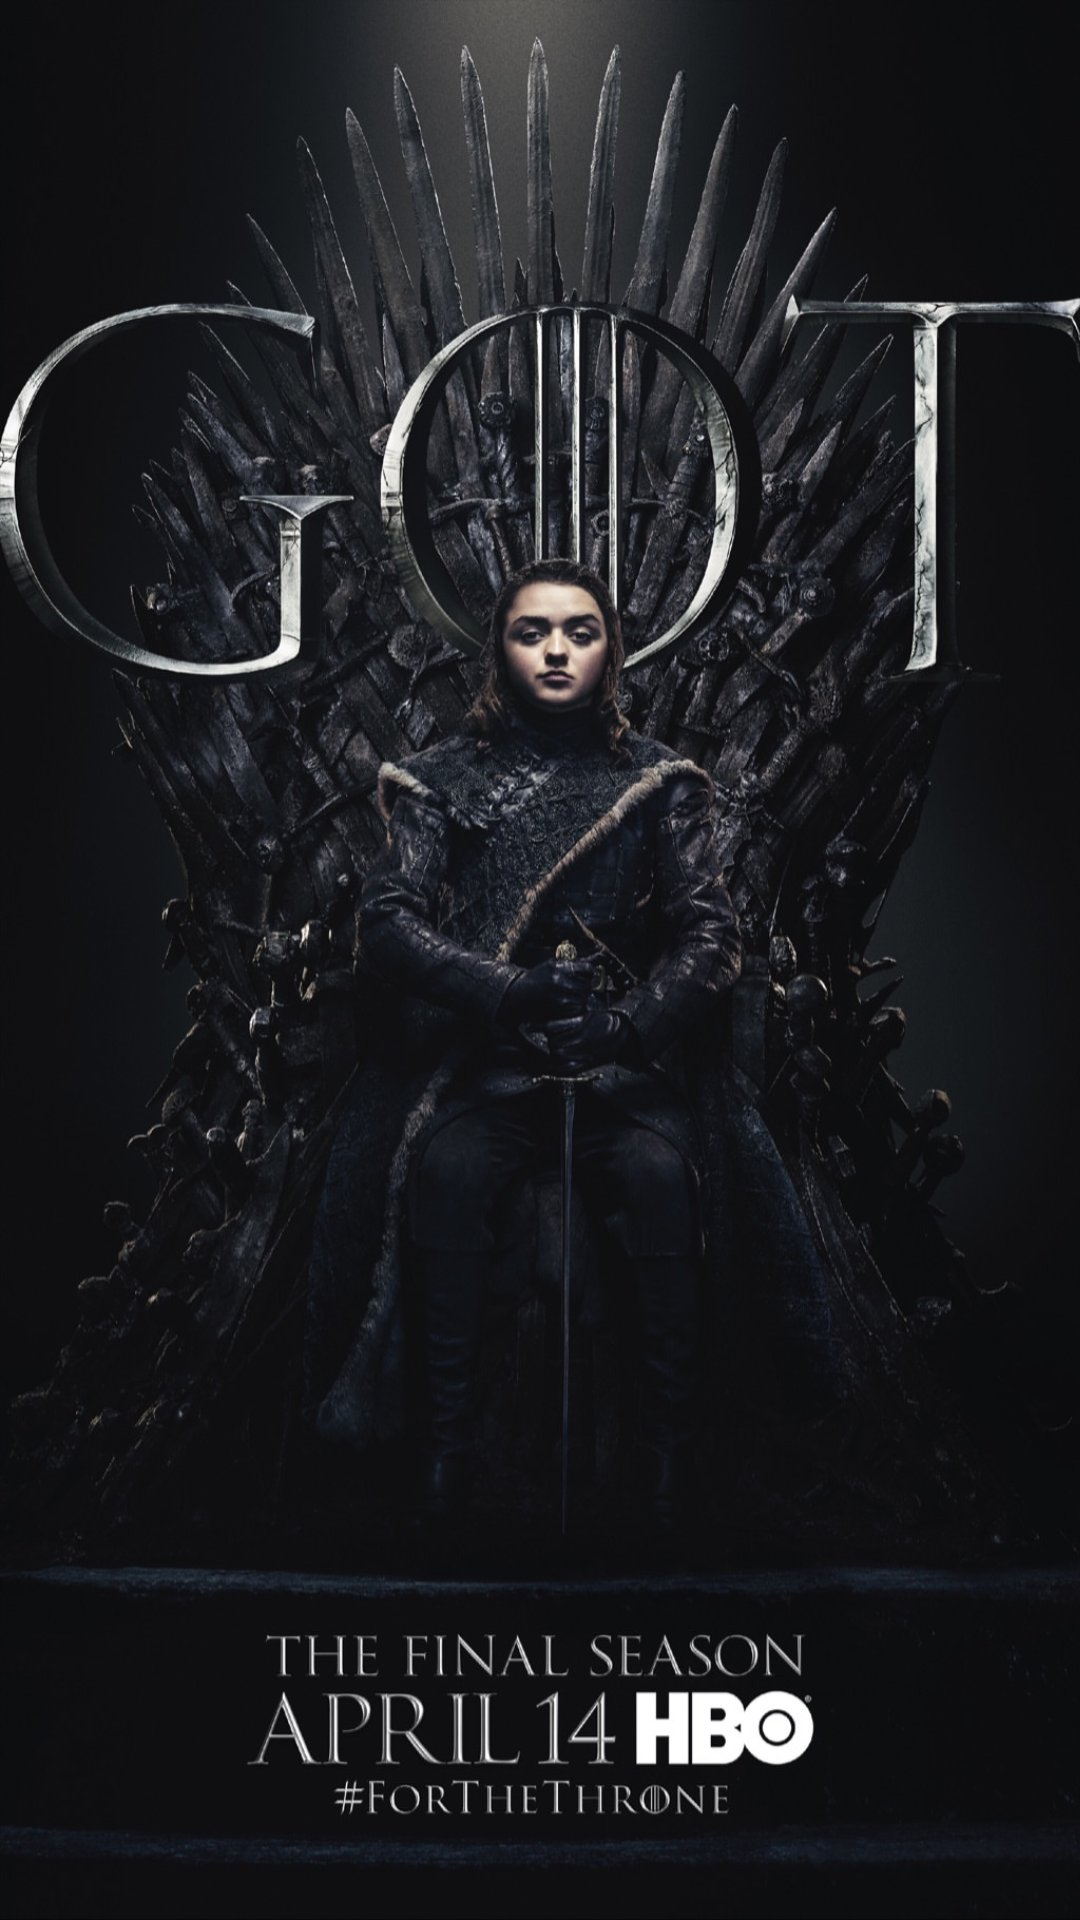 Iron Throne Poster - Arya Stark